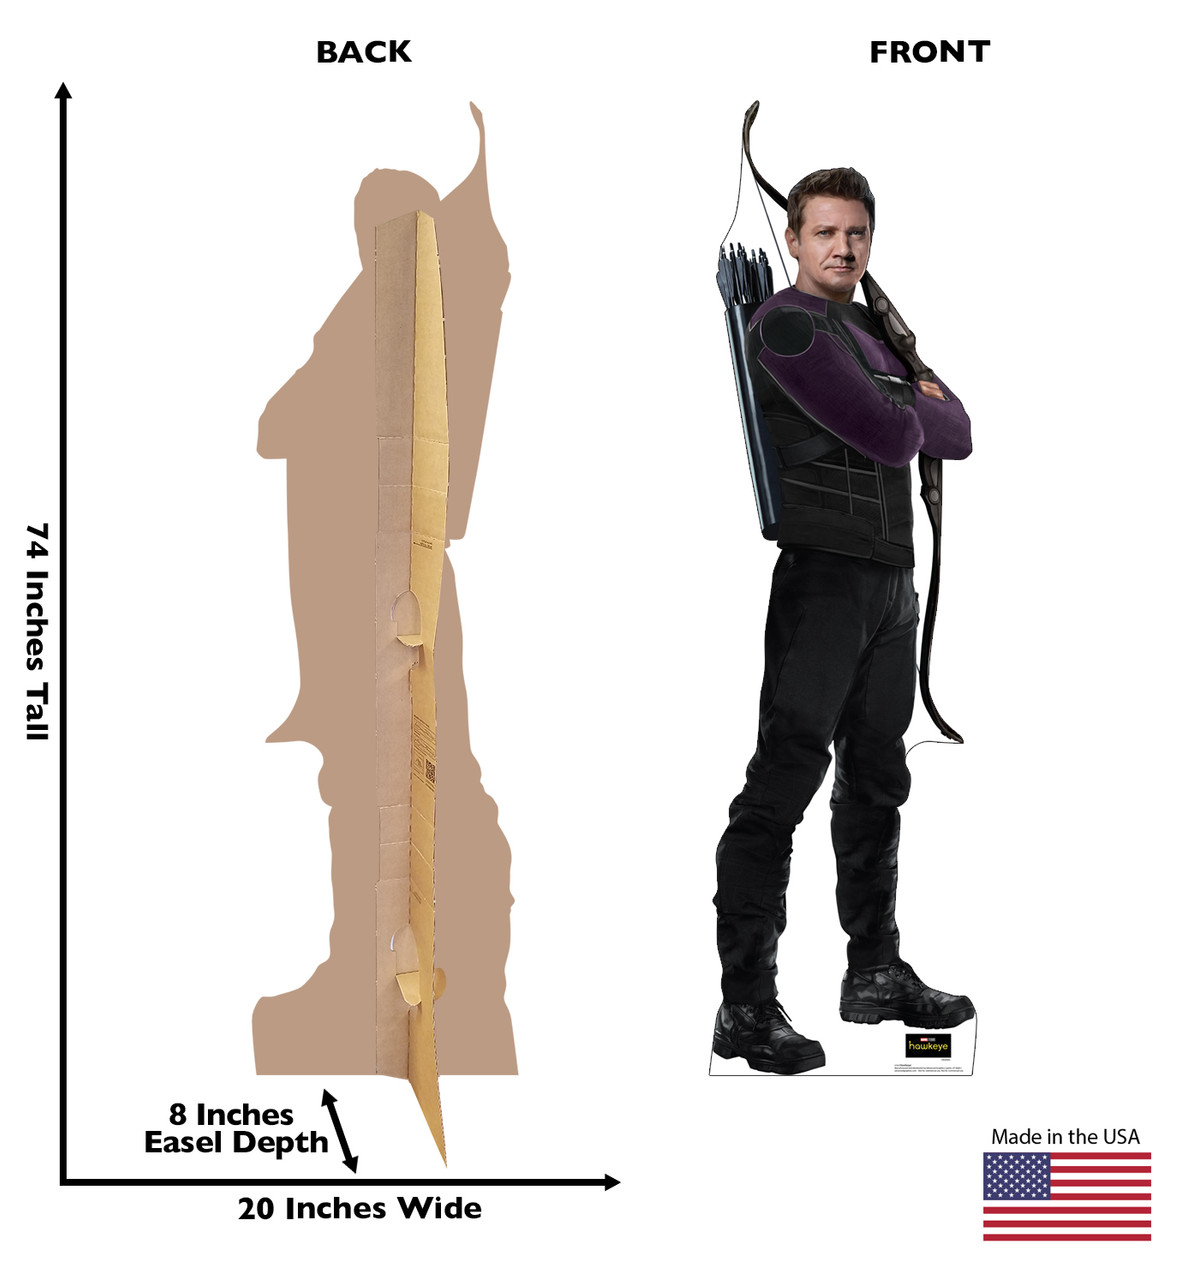 Life-size cardboard standee of Hawkeye from the Disney+ Hawkeye TV Series with back and front dimensions.